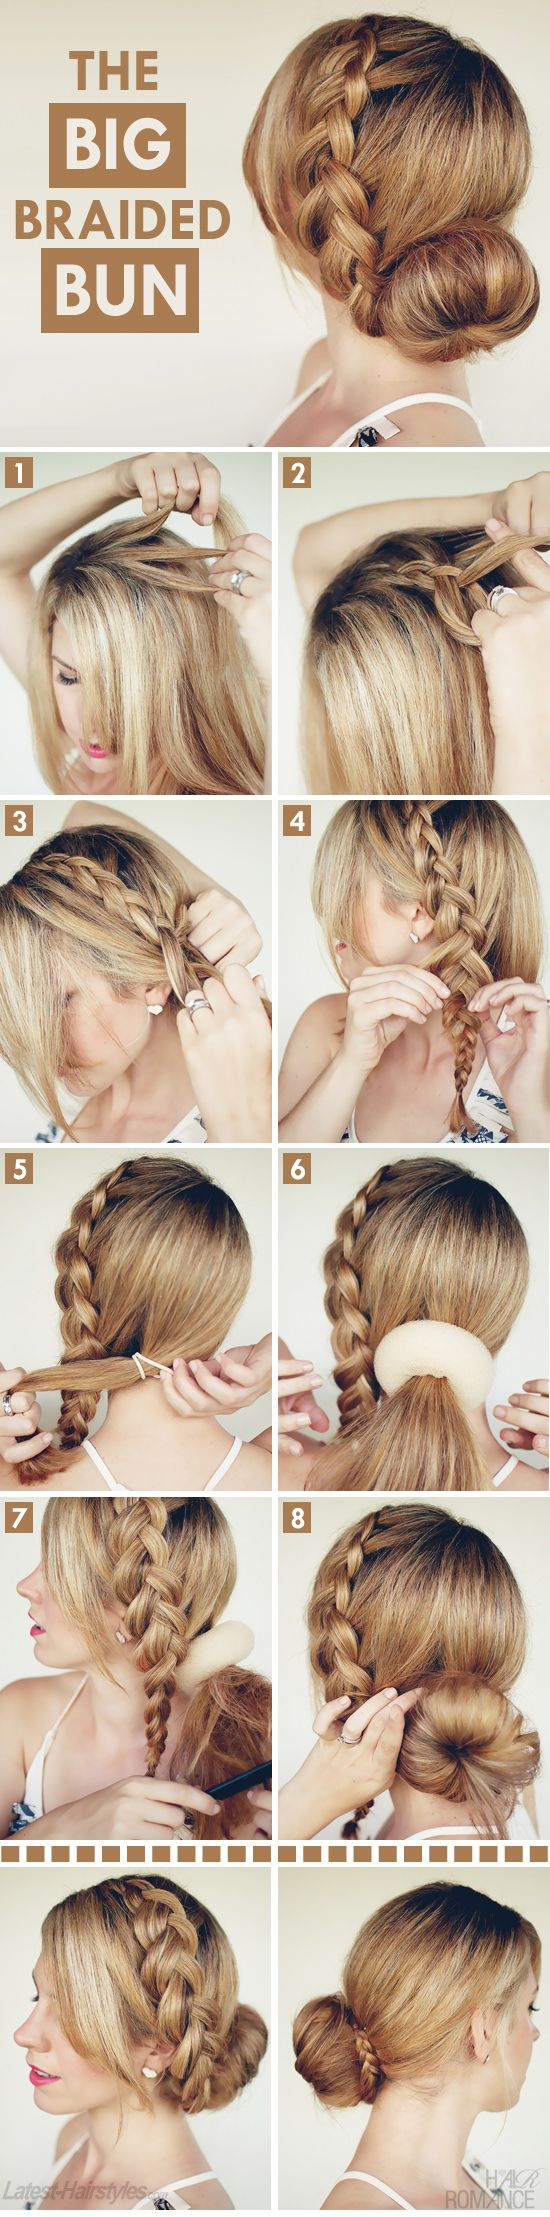 24 holiday hairdos